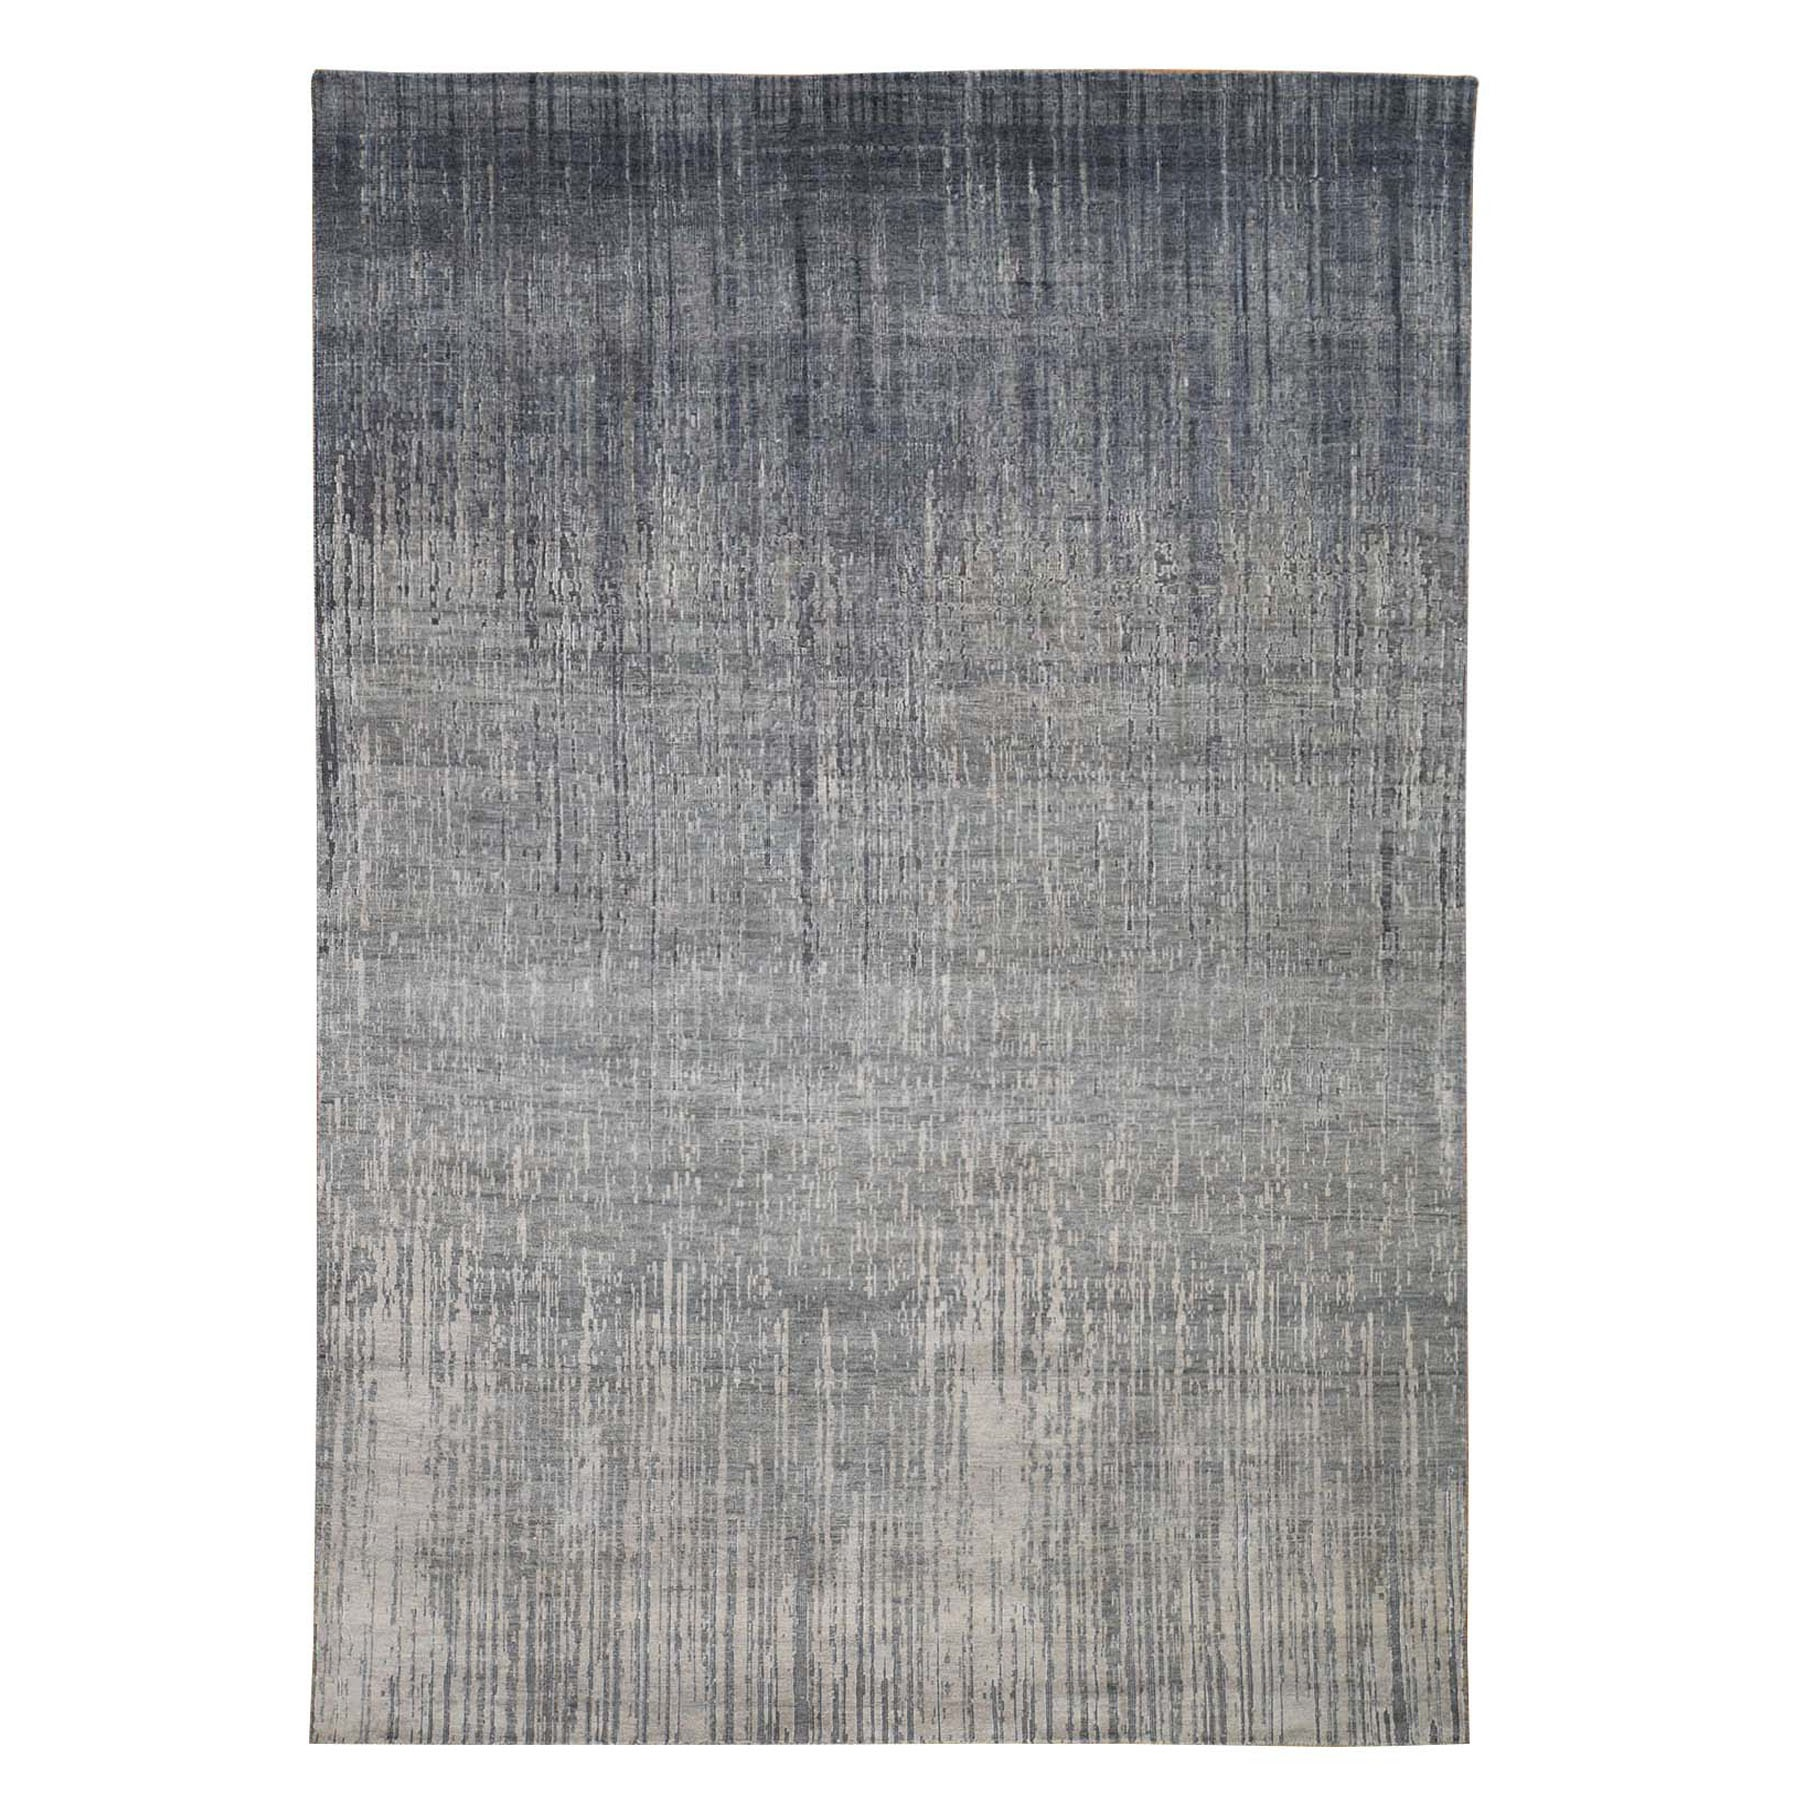 Mid Century Modern Collection Hand Knotted Grey Rug No: 0195248